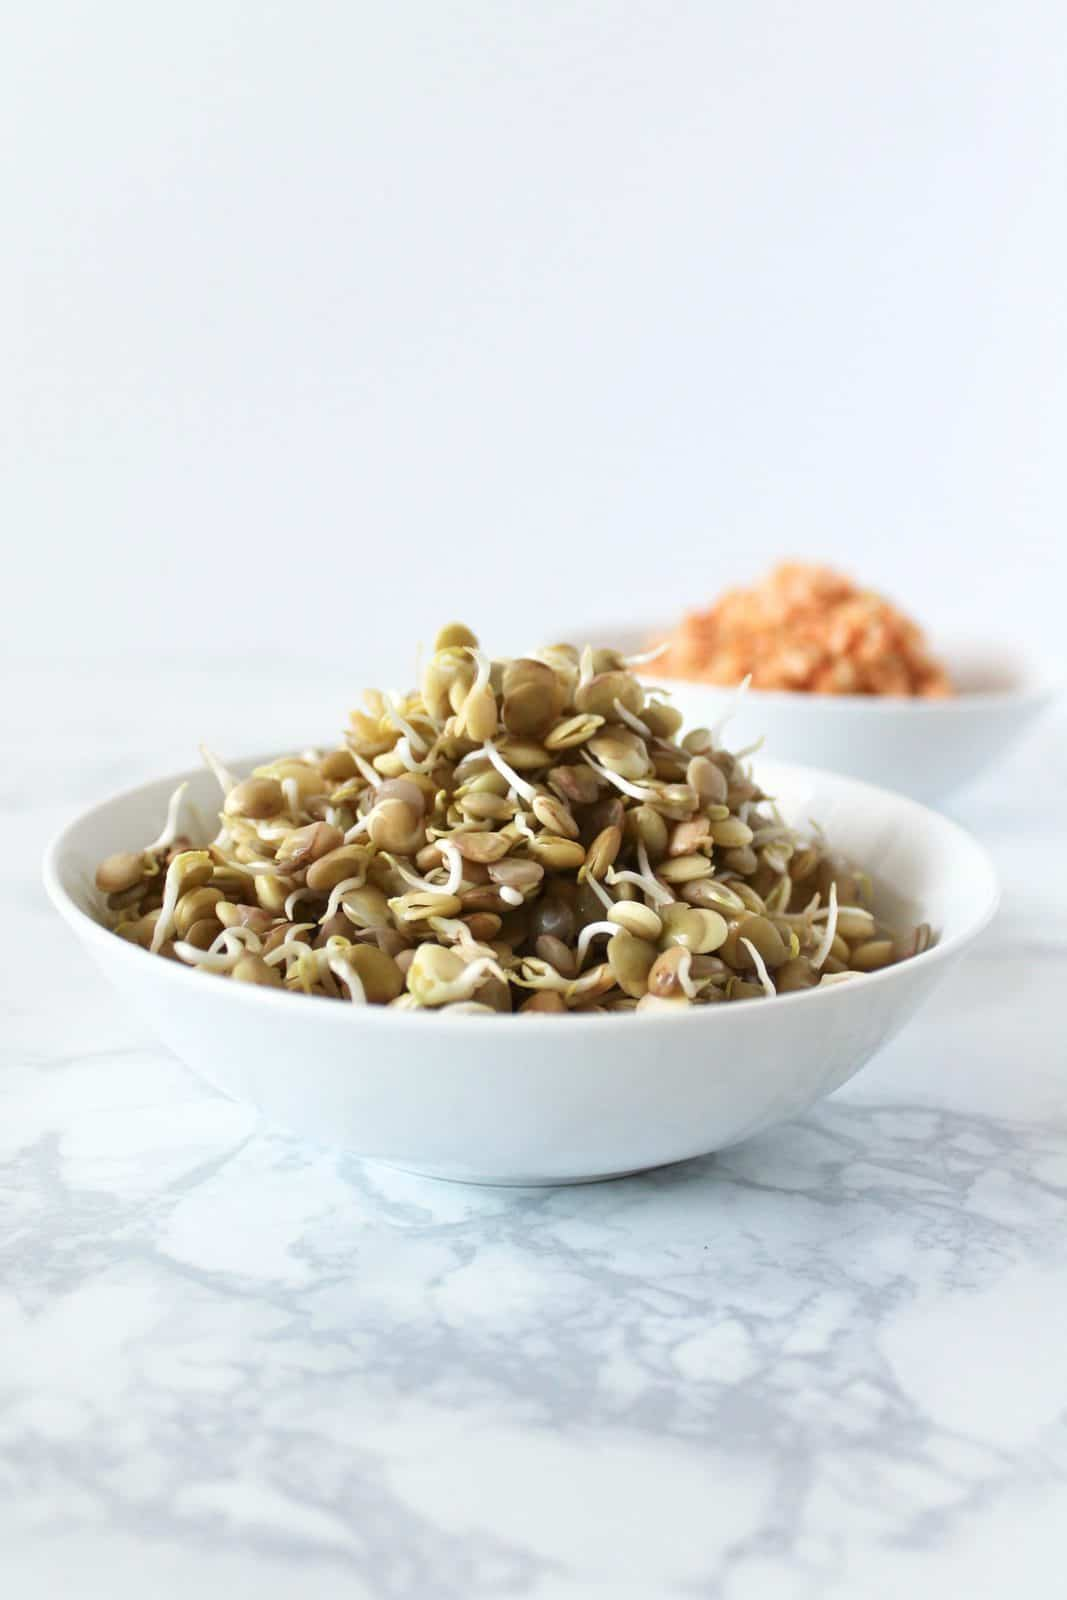 Two white bowl one with sprouted green lentils and one with sprouted red lentils on a white marble surface